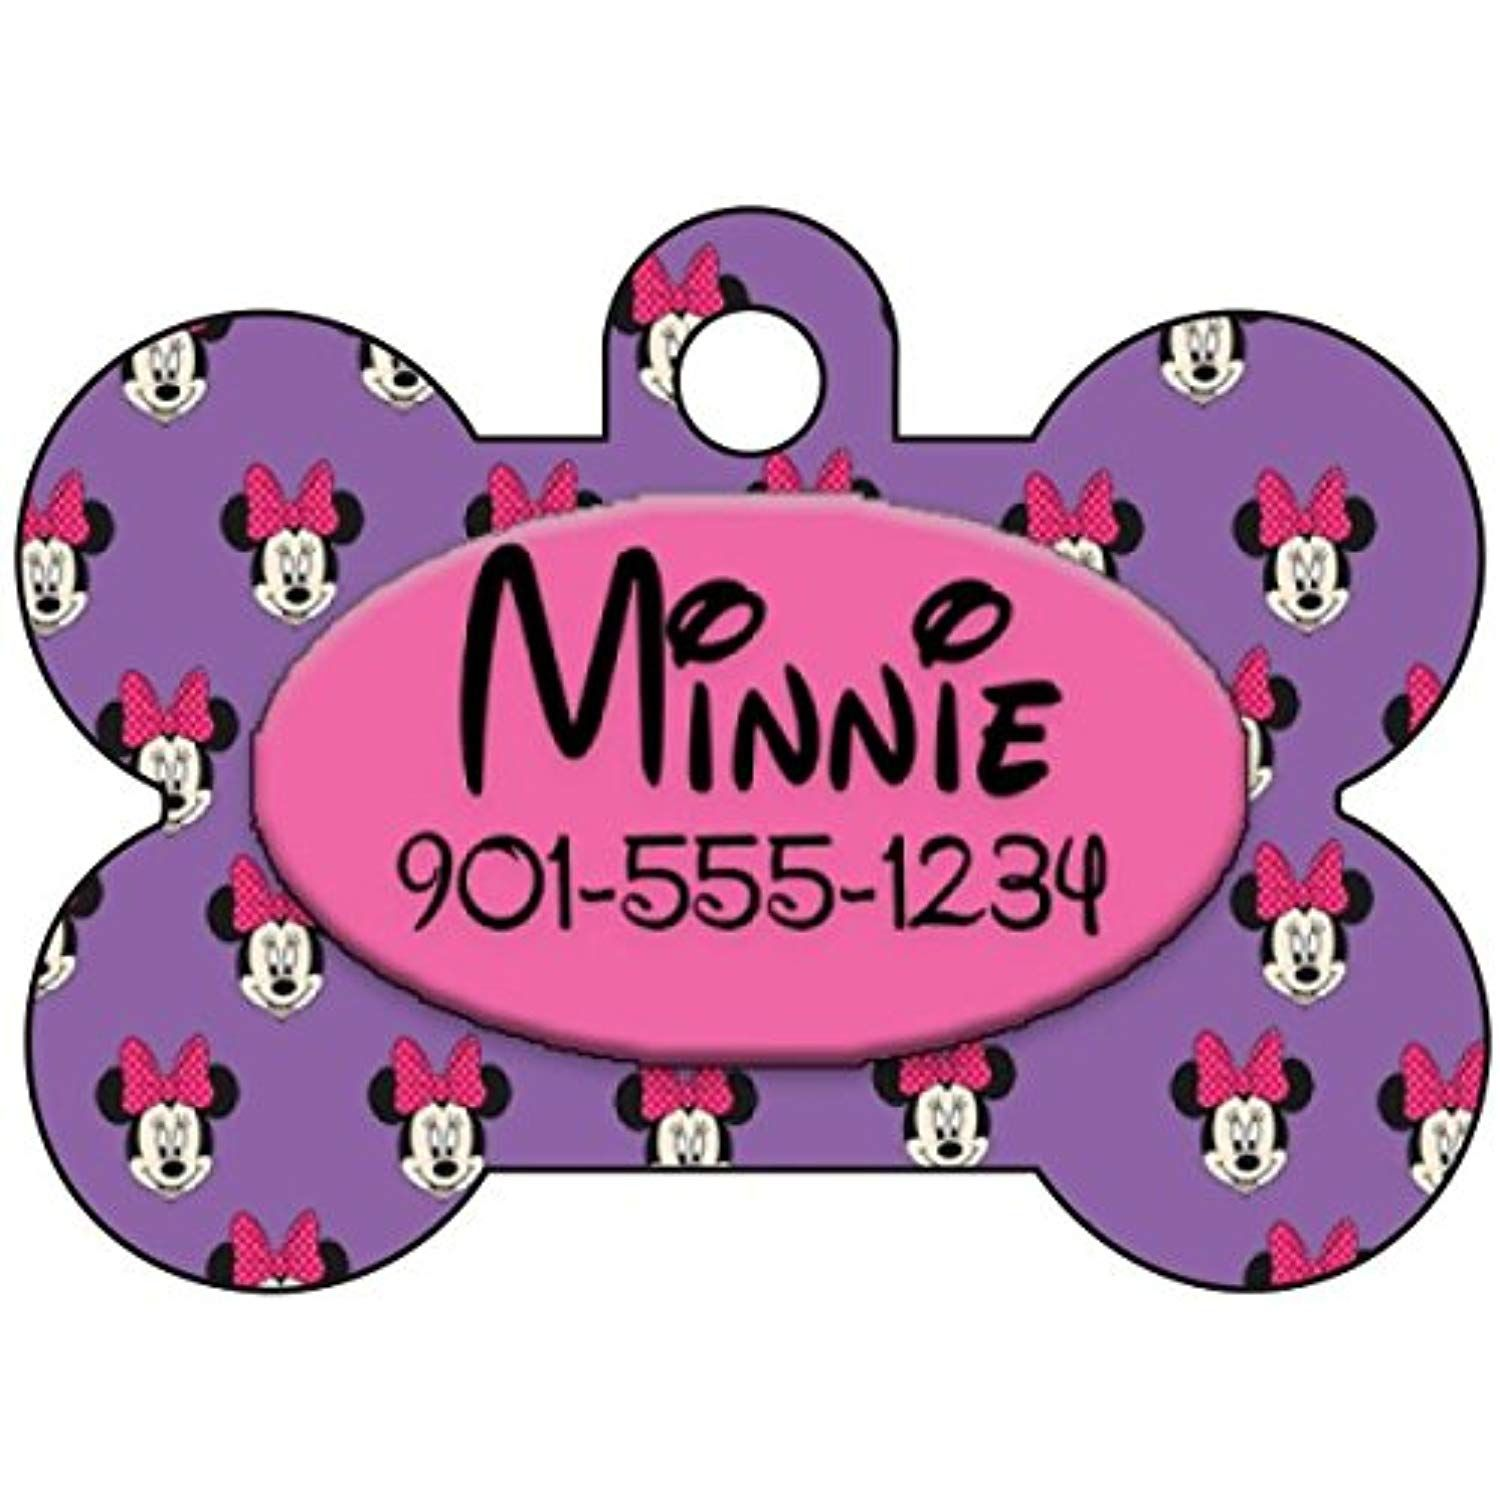 Disney Minnie Mouse Custom Pet Id Dog Tag Personalized w// Name /& Number